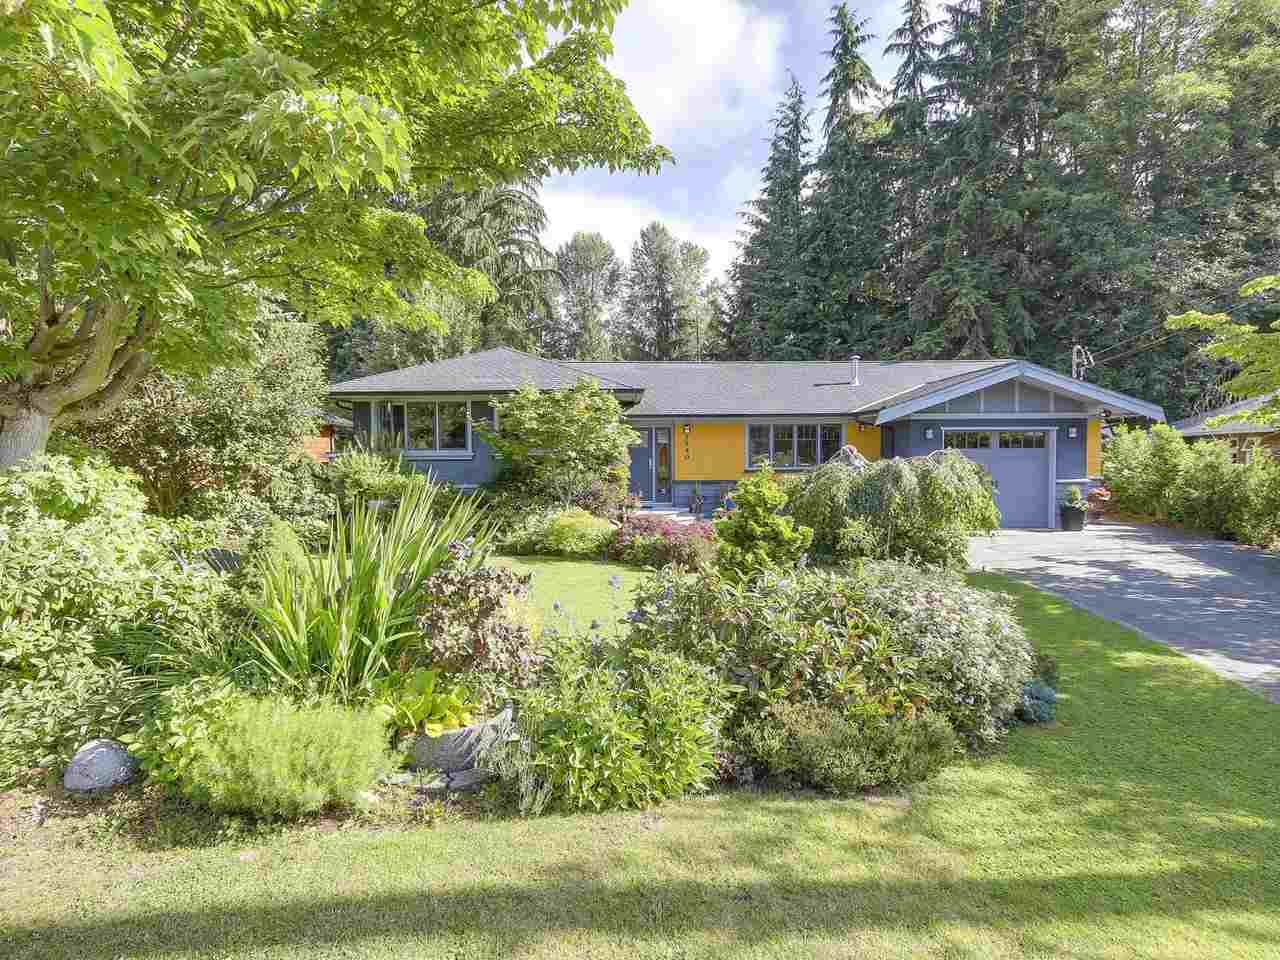 Detached at 1540 E 27TH STREET, North Vancouver, British Columbia. Image 1